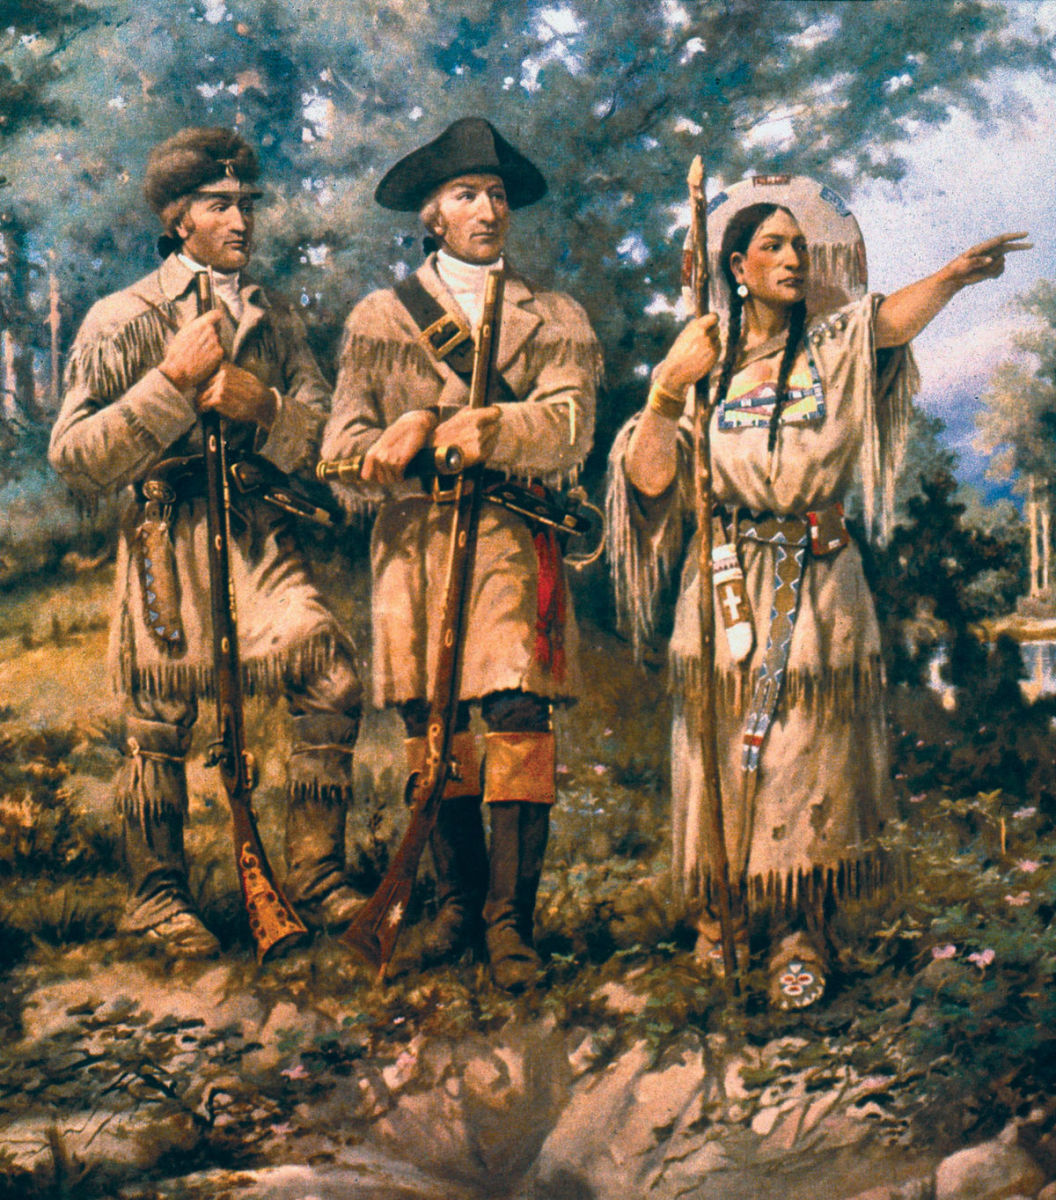 Sacagawea, The Guide, the Wife, the Mother